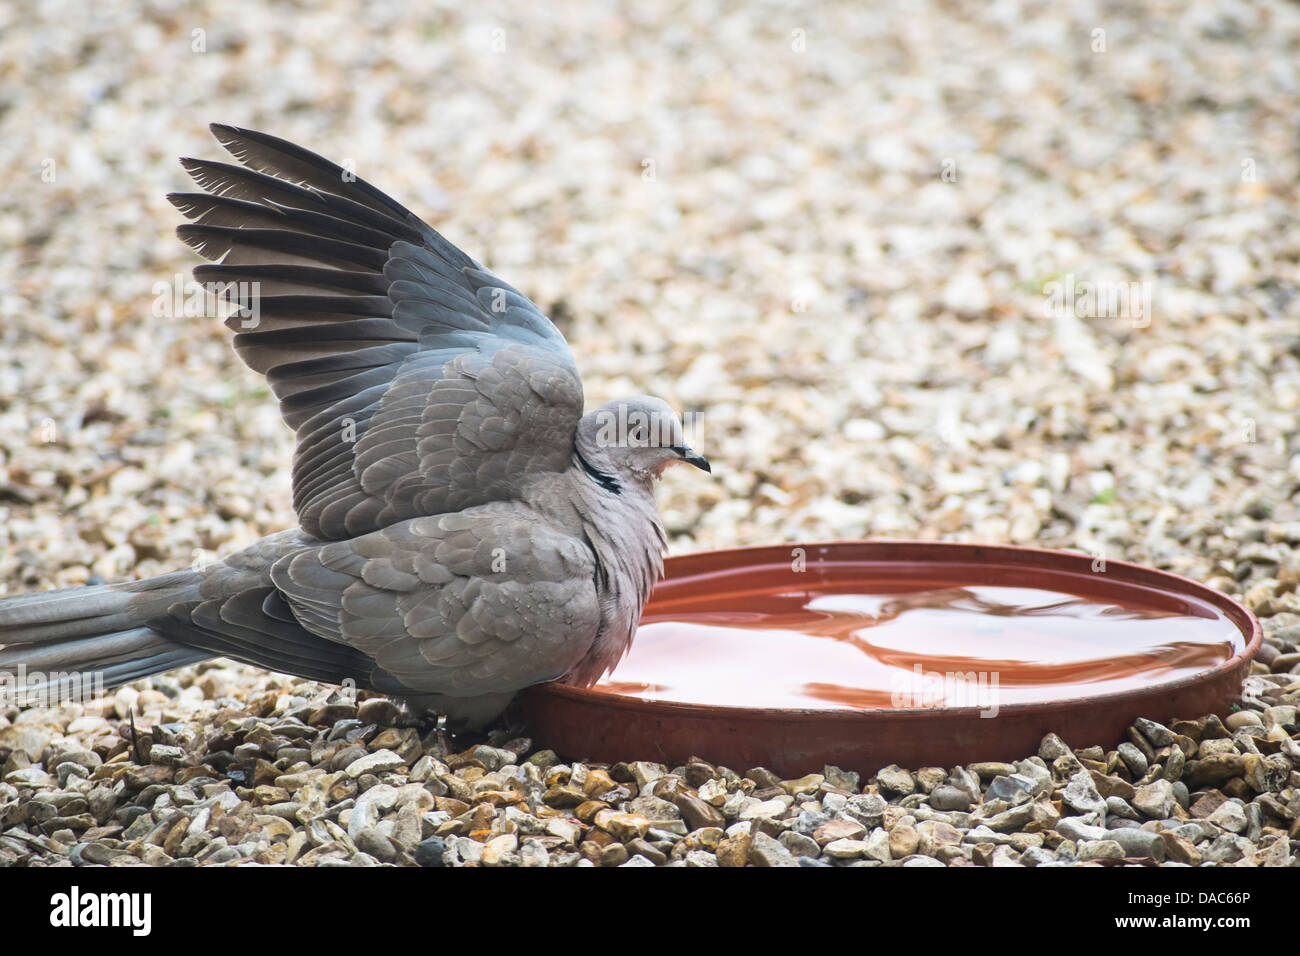 A collared dove tentatively preparing for a bath - Stock Image